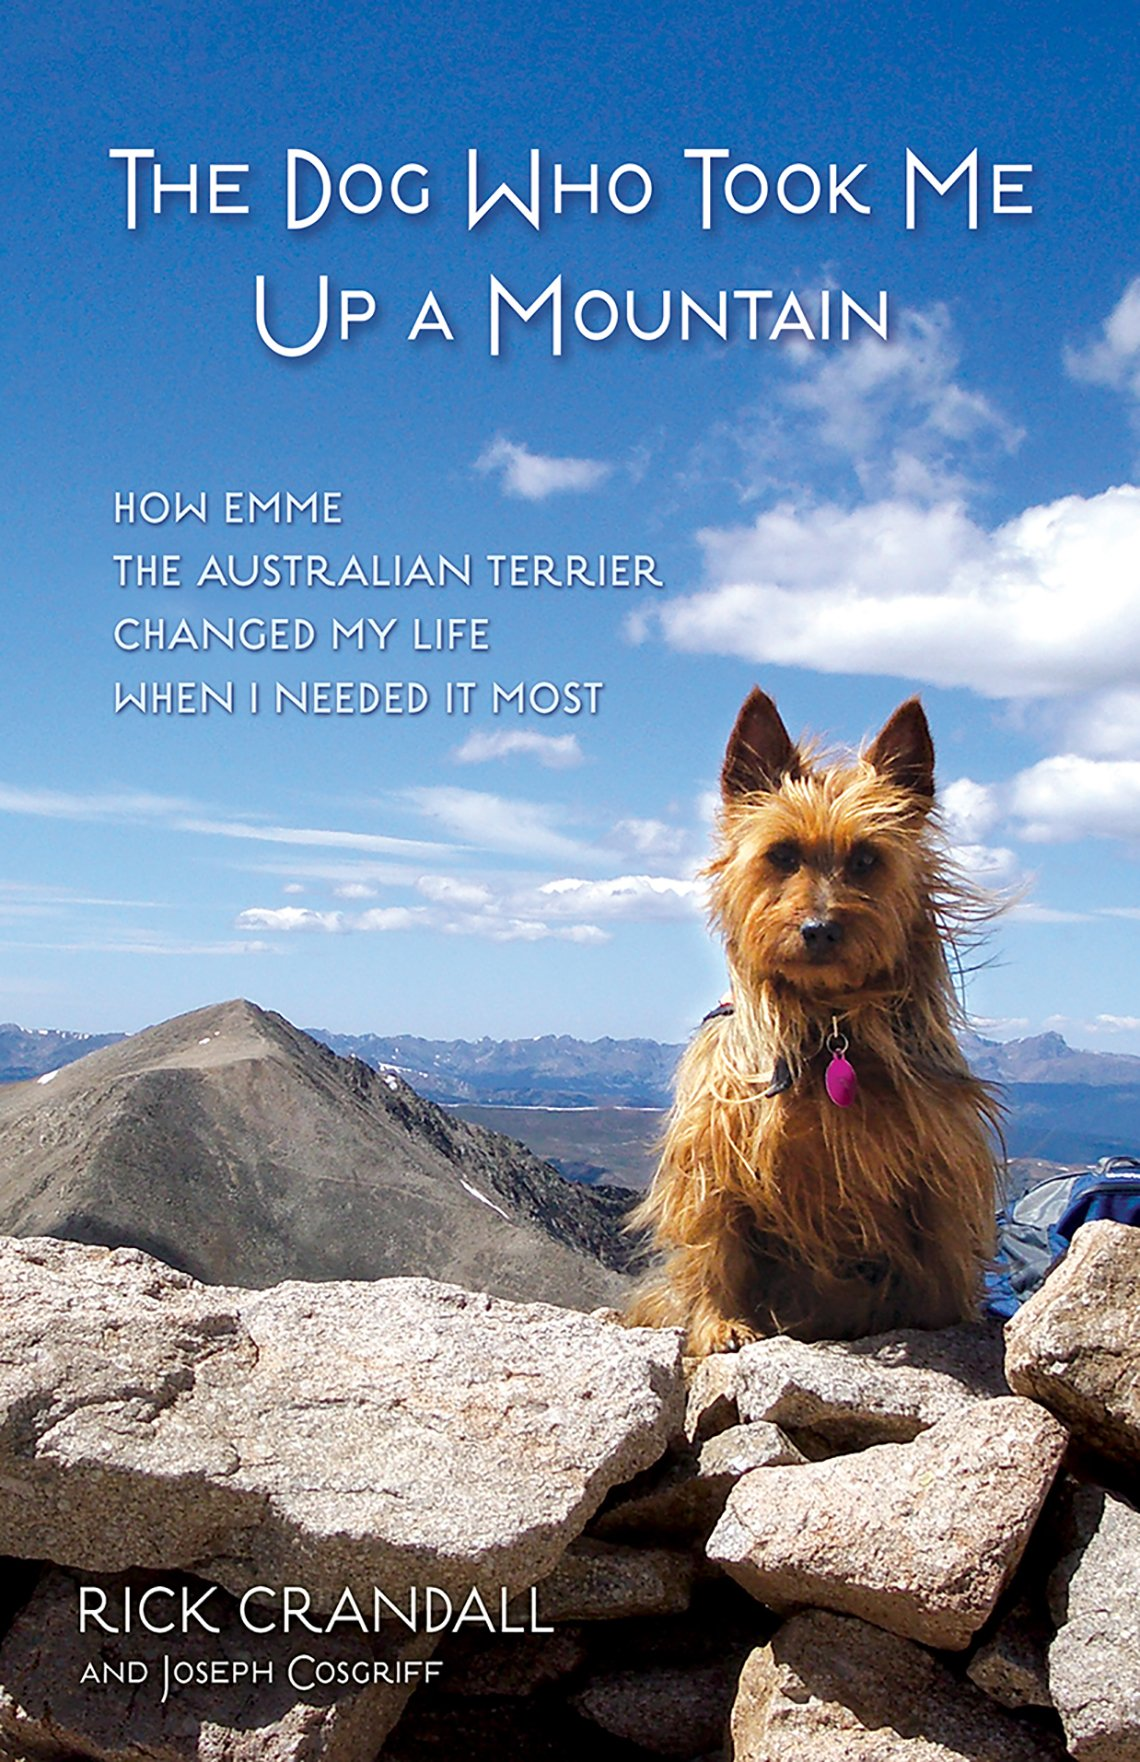 The book cover for 'The Dog Who Took Me Up a Mountain